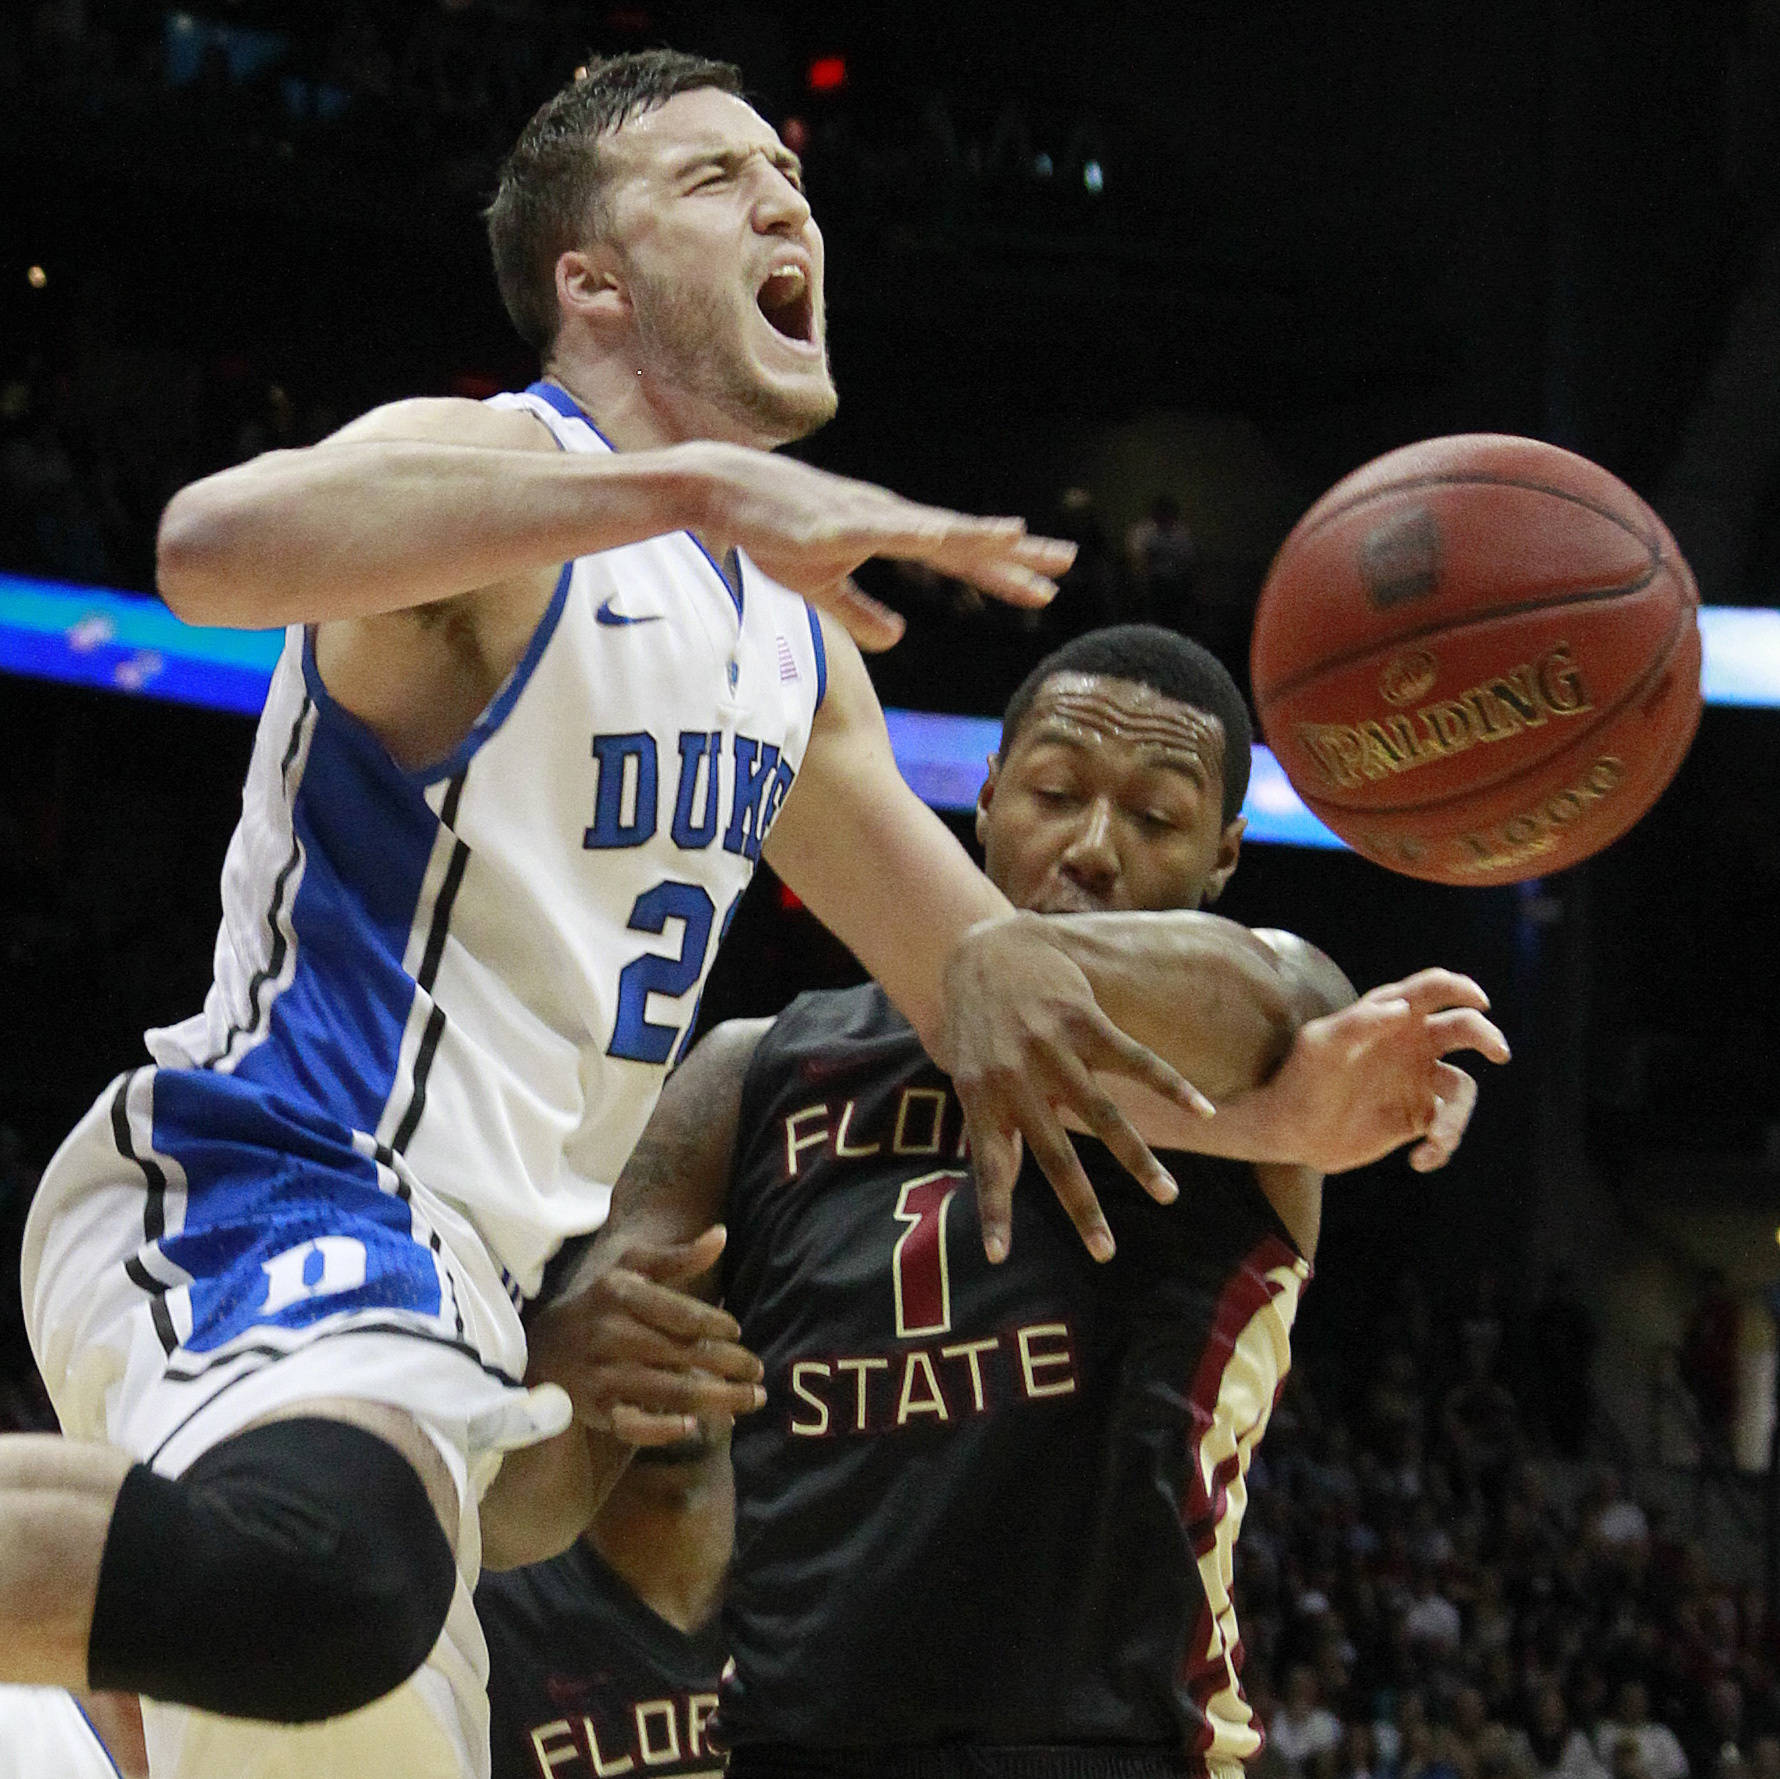 Duke forward Miles Plumlee (21) and Florida State forward/center Xavier Gibson (1) collide during the first half of an NCAA college basketball game in the semifinals of the Atlantic Coast Conference tournament, Saturday, March 10, 2012, in Atlanta. (AP Photo/John Bazemore)